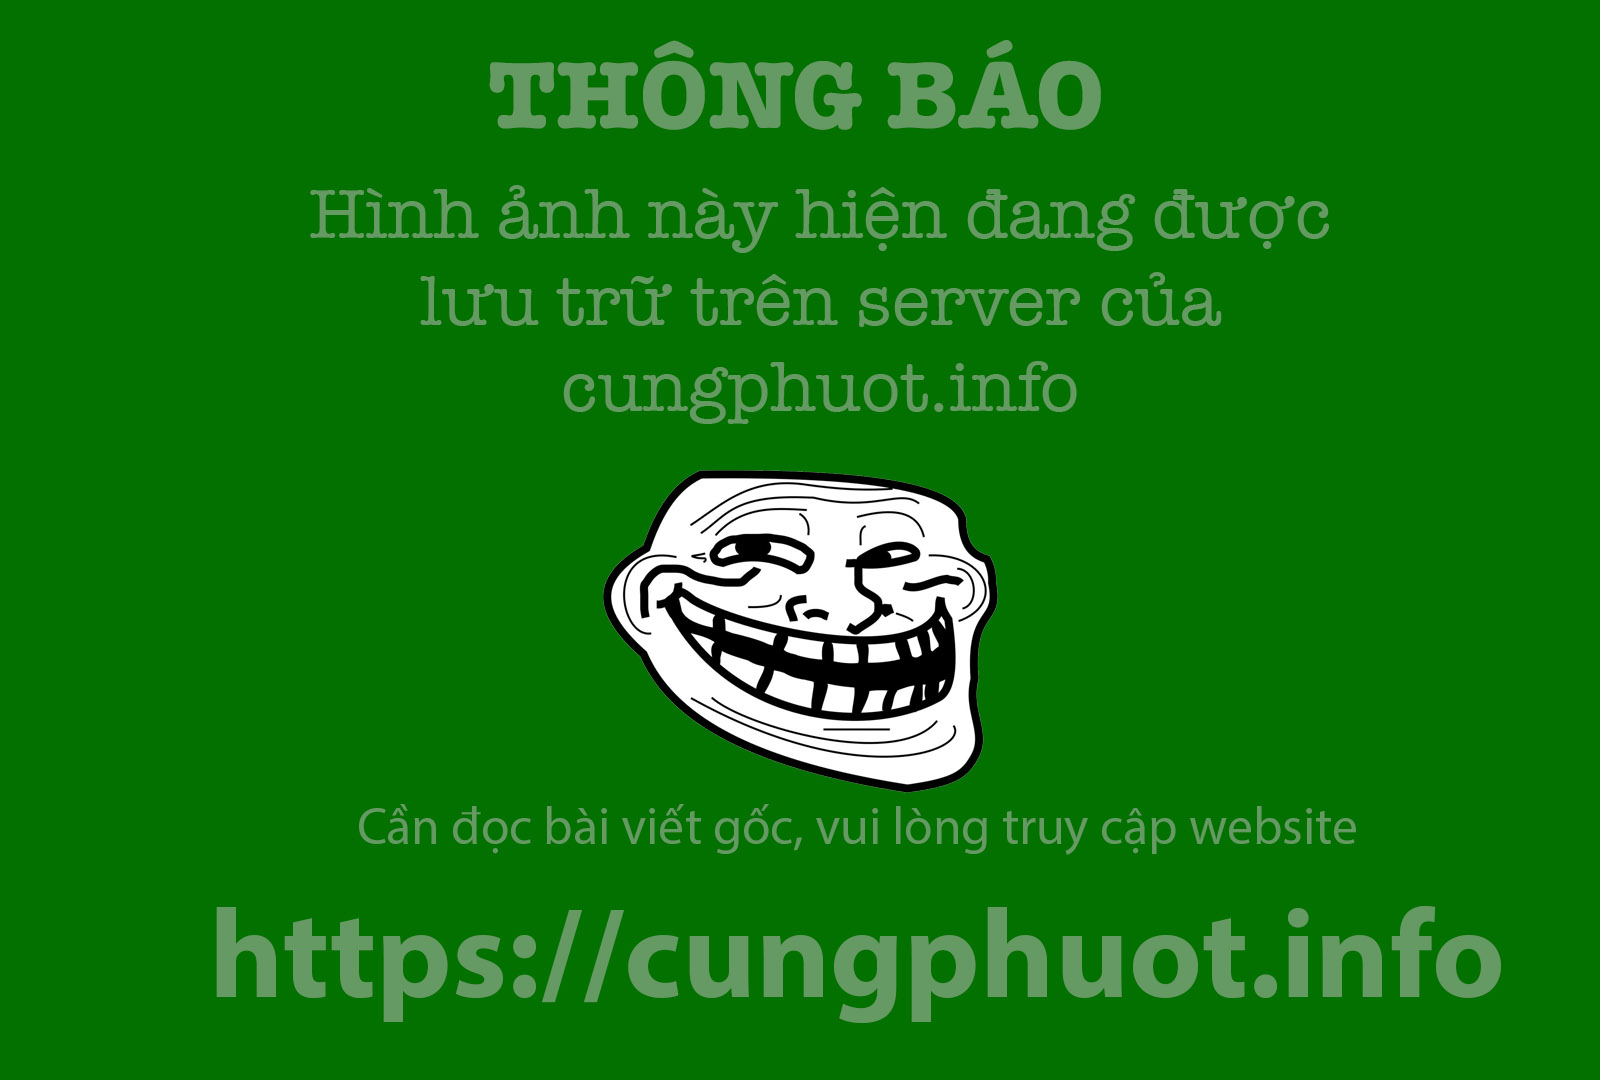 9 cung duong deo hung vi khien tin do du lich muon chinh phuc hinh anh 7